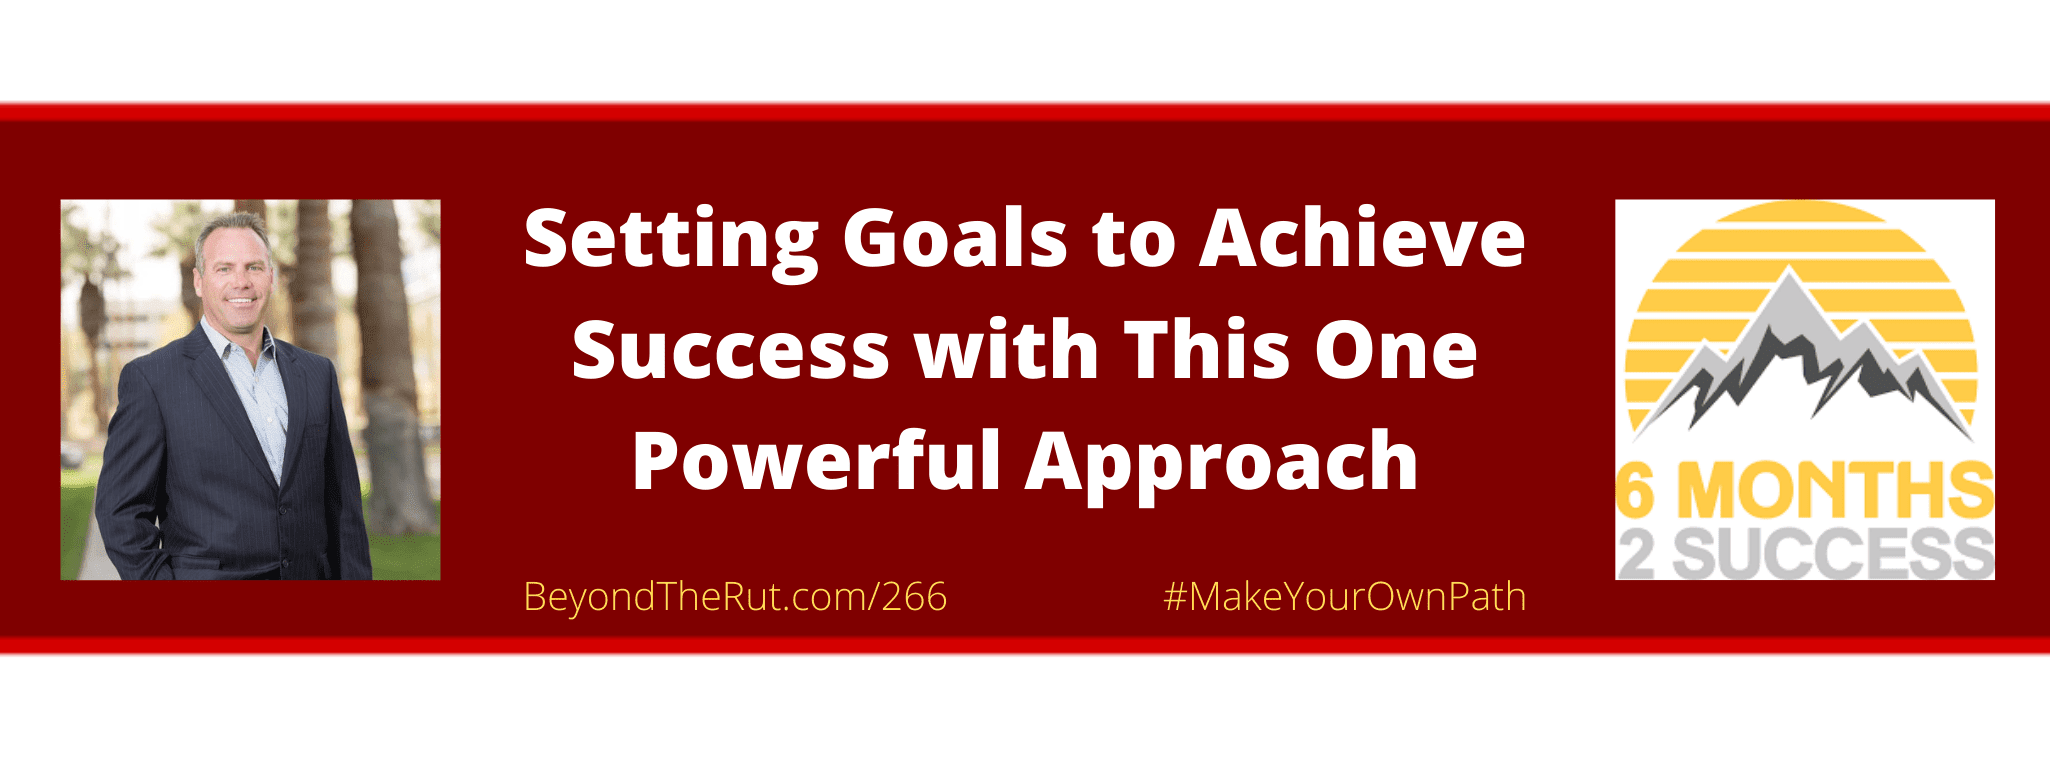 Setting goals to achieve success with this one powerful approach